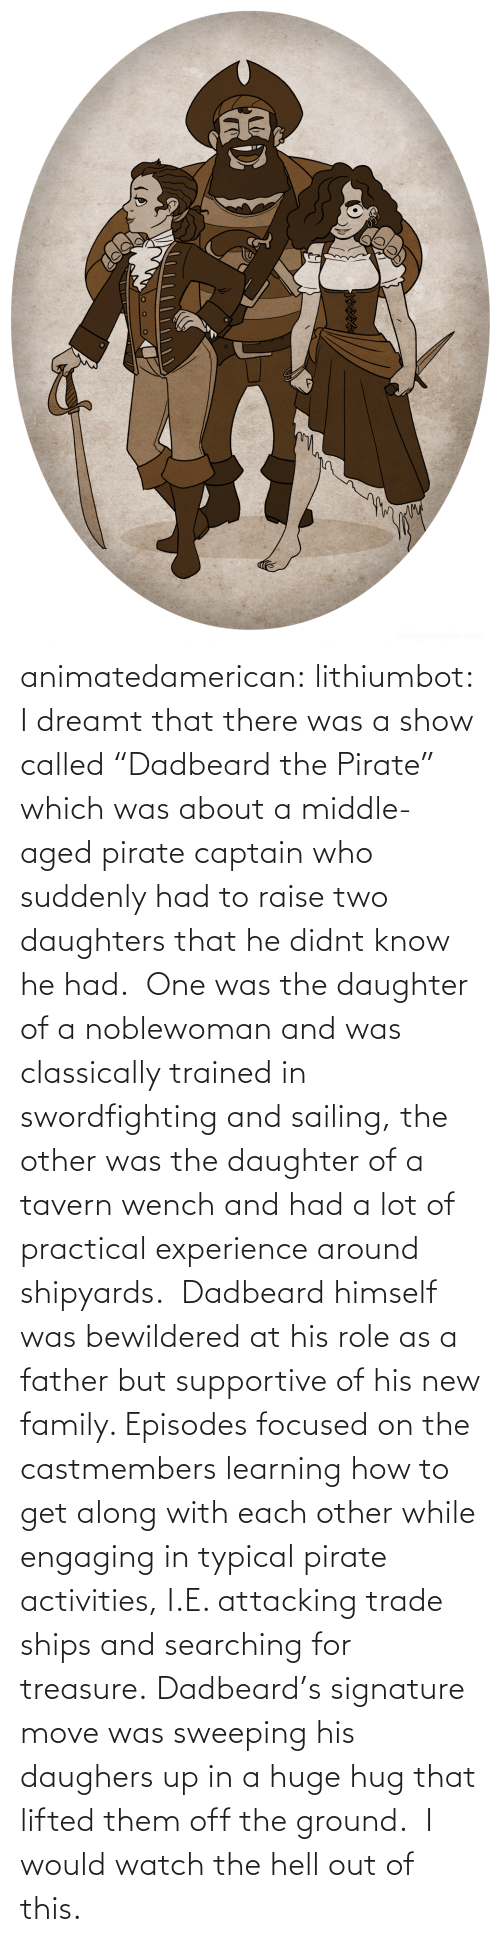 "episodes: animatedamerican: lithiumbot:  I dreamt that there was a show called ""Dadbeard the Pirate"" which was about a middle-aged pirate captain who suddenly had to raise two daughters that he didnt know he had.  One was the daughter of a noblewoman and was classically trained in swordfighting and sailing, the other was the daughter of a tavern wench and had a lot of practical experience around shipyards.  Dadbeard himself was bewildered at his role as a father but supportive of his new family. Episodes focused on the castmembers learning how to get along with each other while engaging in typical pirate activities, I.E. attacking trade ships and searching for treasure. Dadbeard's signature move was sweeping his daughers up in a huge hug that lifted them off the ground.   I would watch the hell out of this."